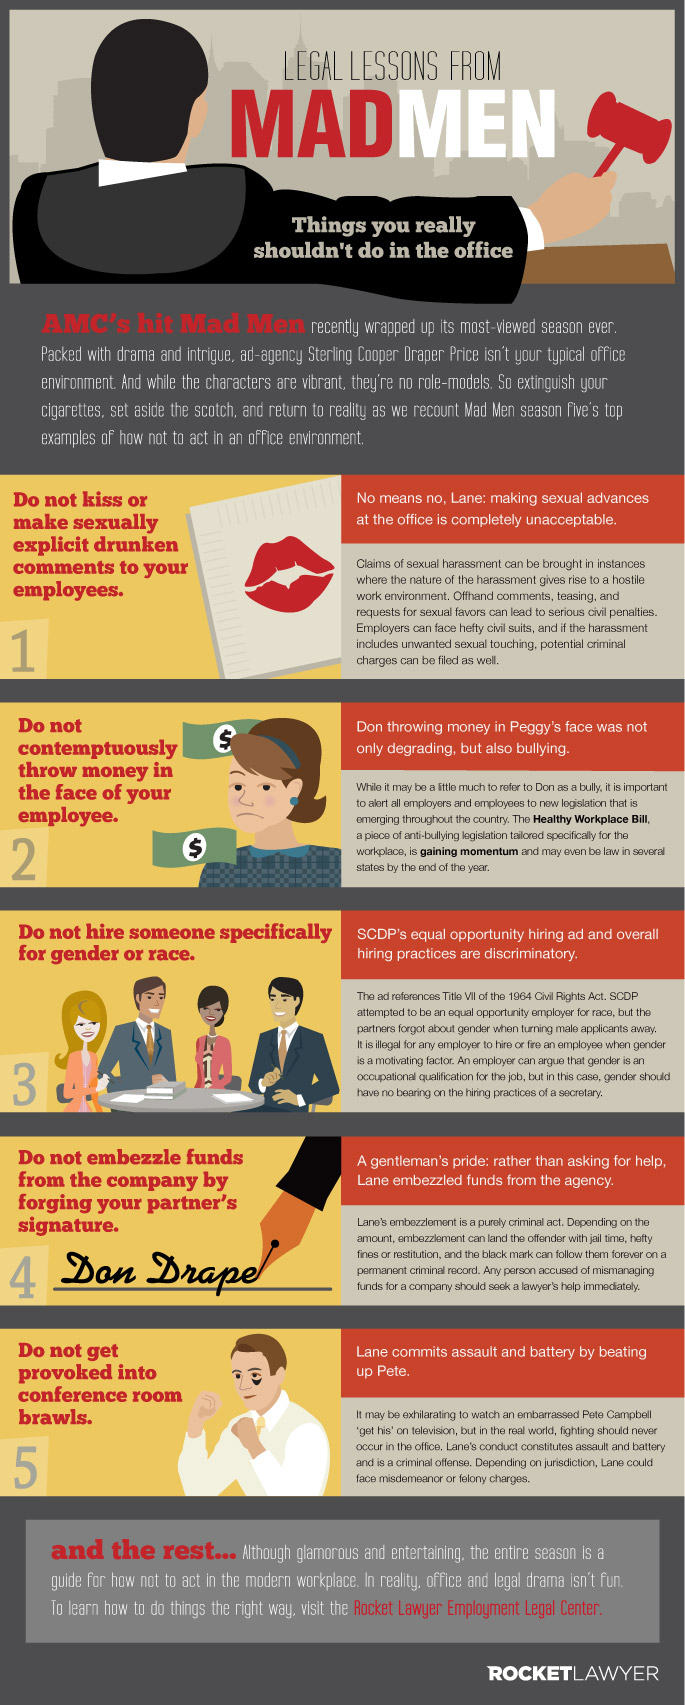 legal-lessons-from-mad-men_505f99353a420